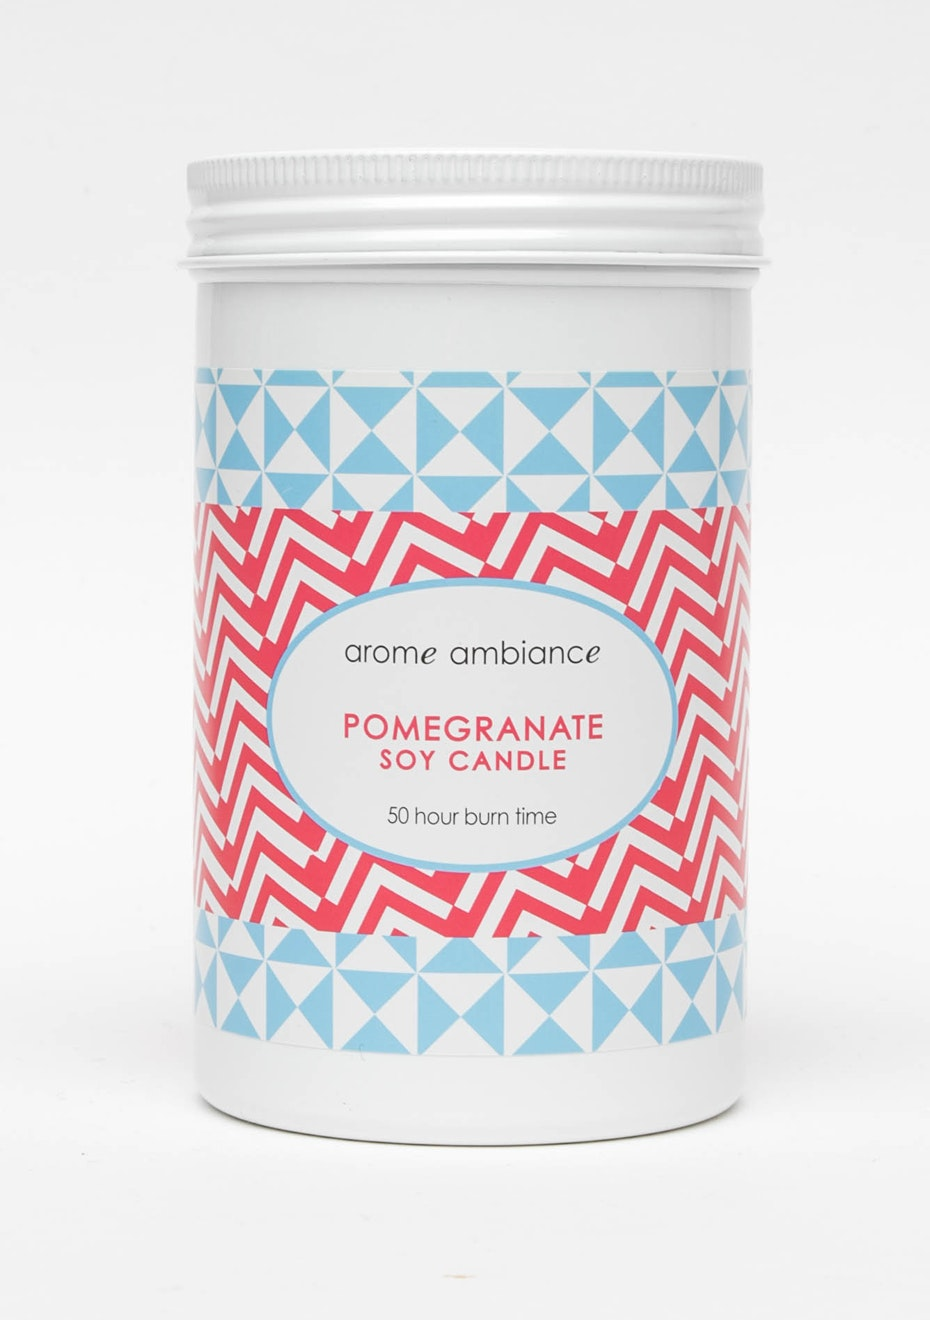 Arome Ambiance Geo Pop Pomegranate Soy Candle 50Hr